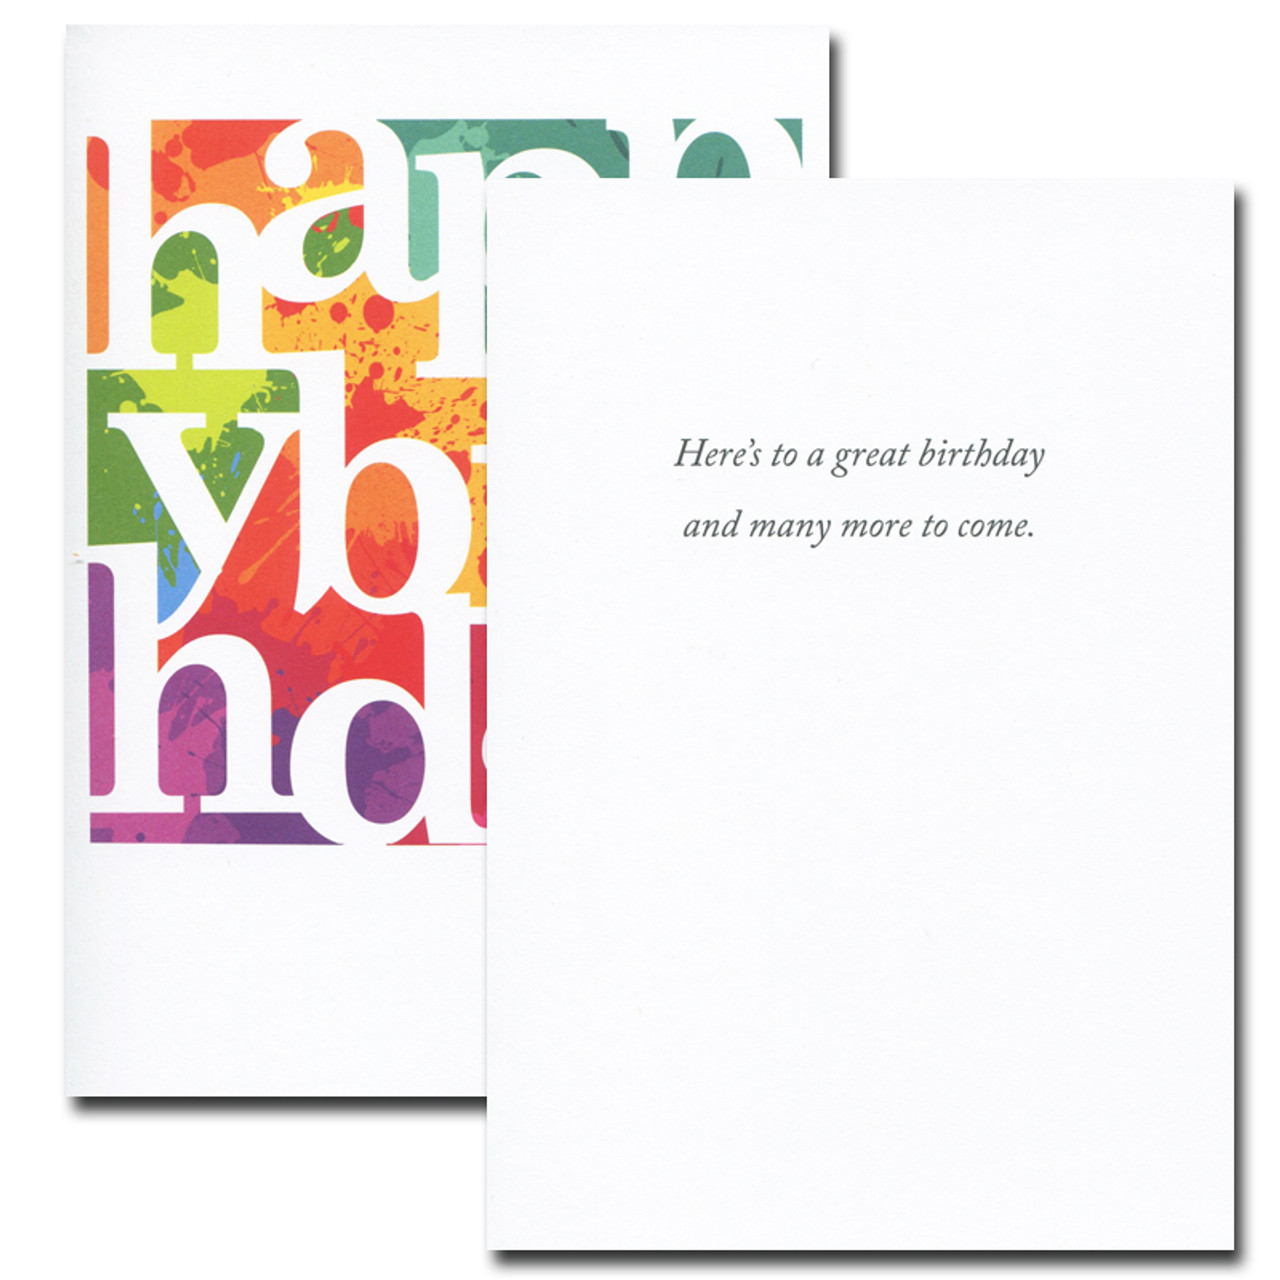 Color Blocks Birthday Card inside reads: Here's to a great birthday and many more to come